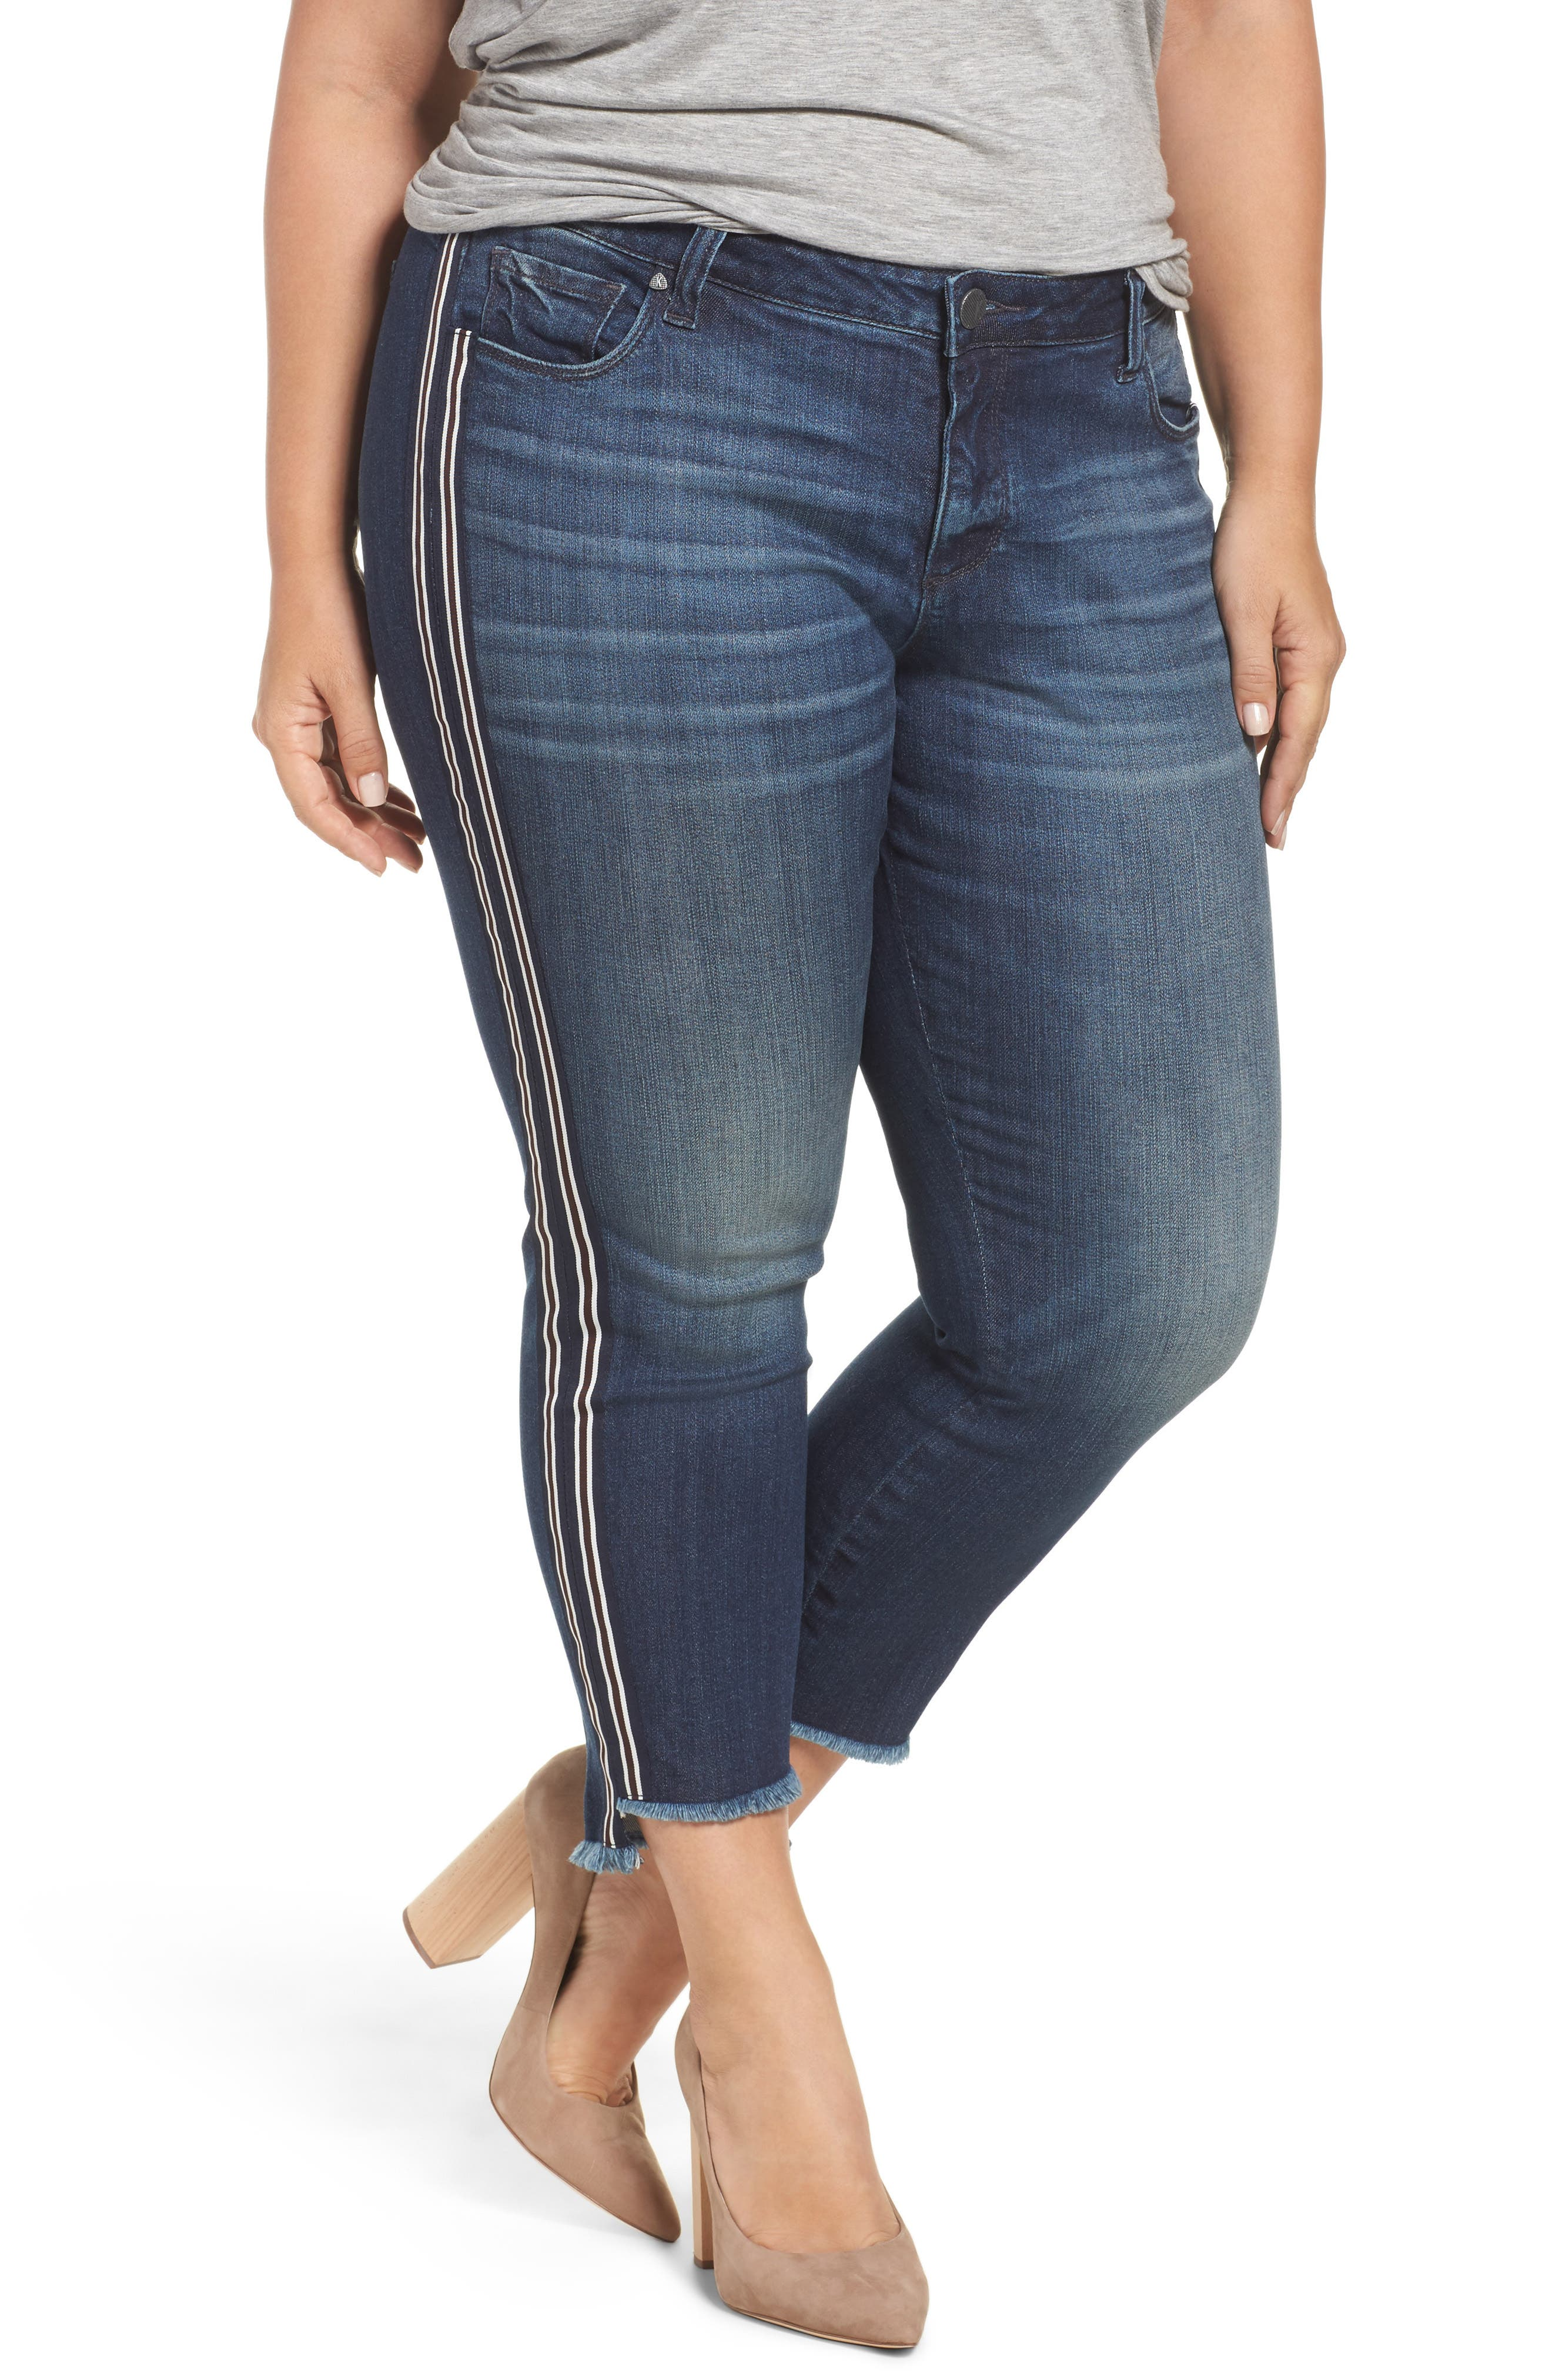 Main Image - KUT from the Kloth Reese Side Stripe Uneven Ankle Jeans (Analyzed) (Plus Size)